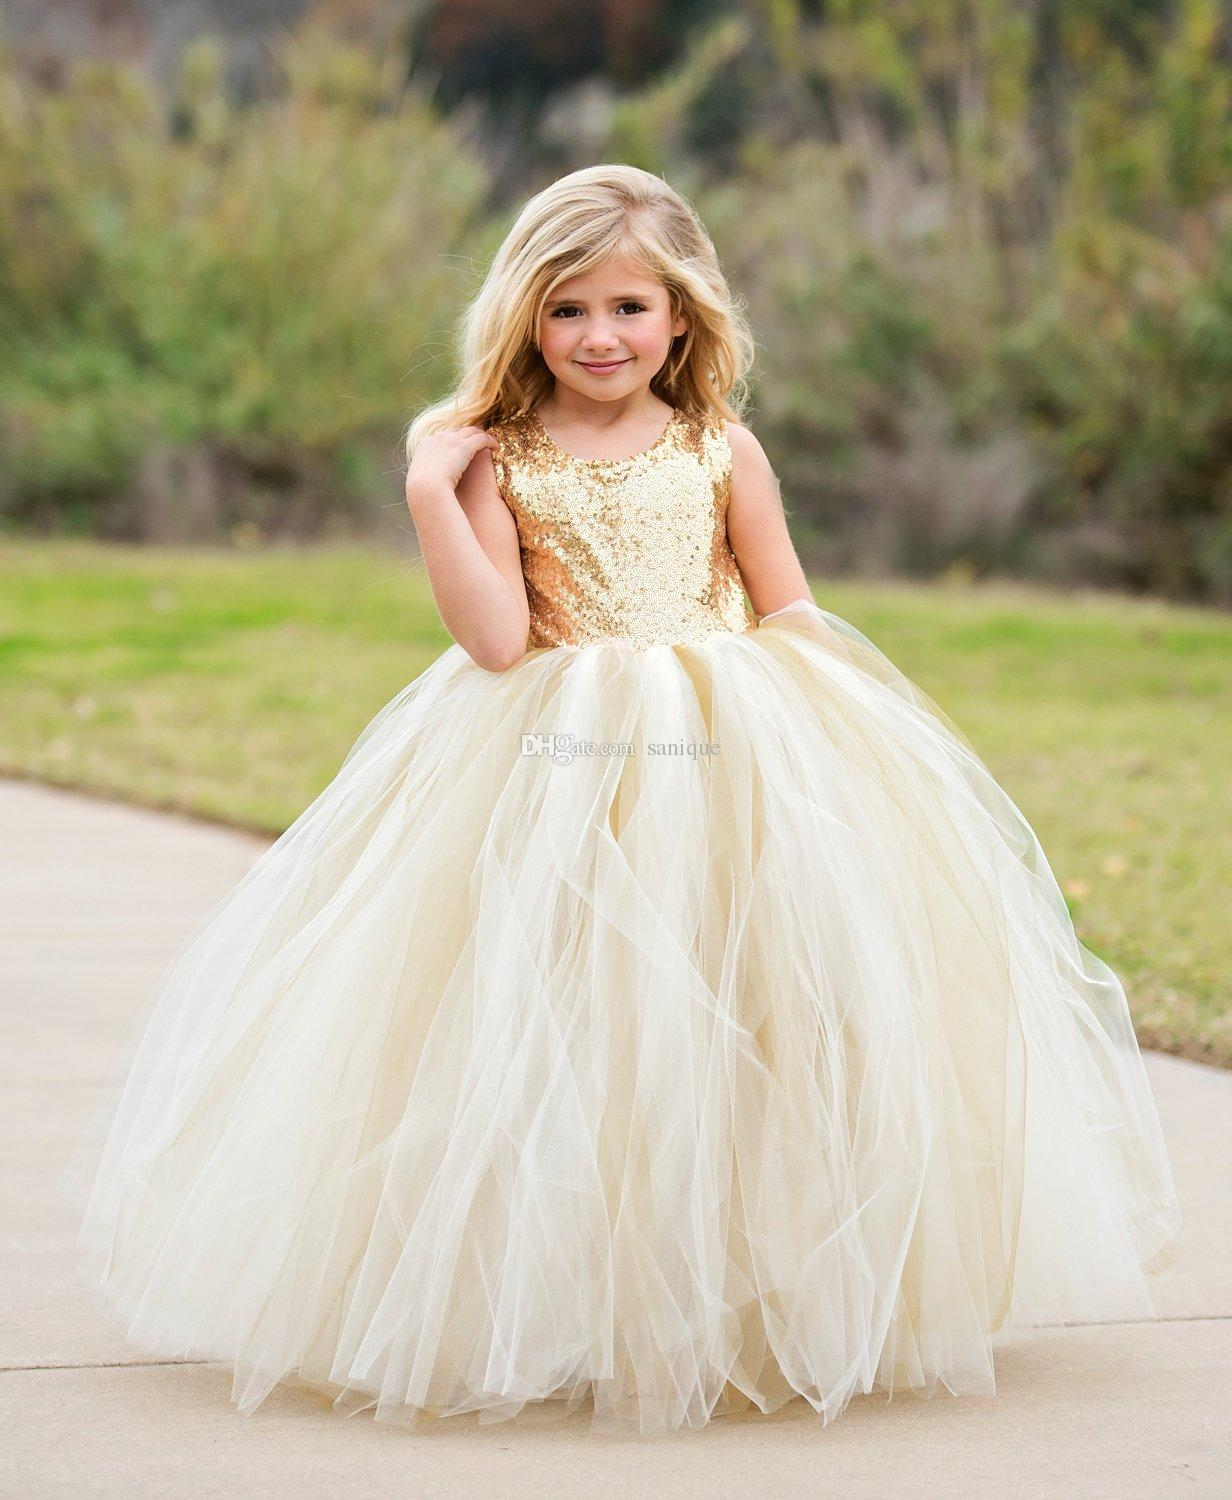 Wedding Flower Girl: 2018 High Quality Flower Girls Dresses Sparkly Gold